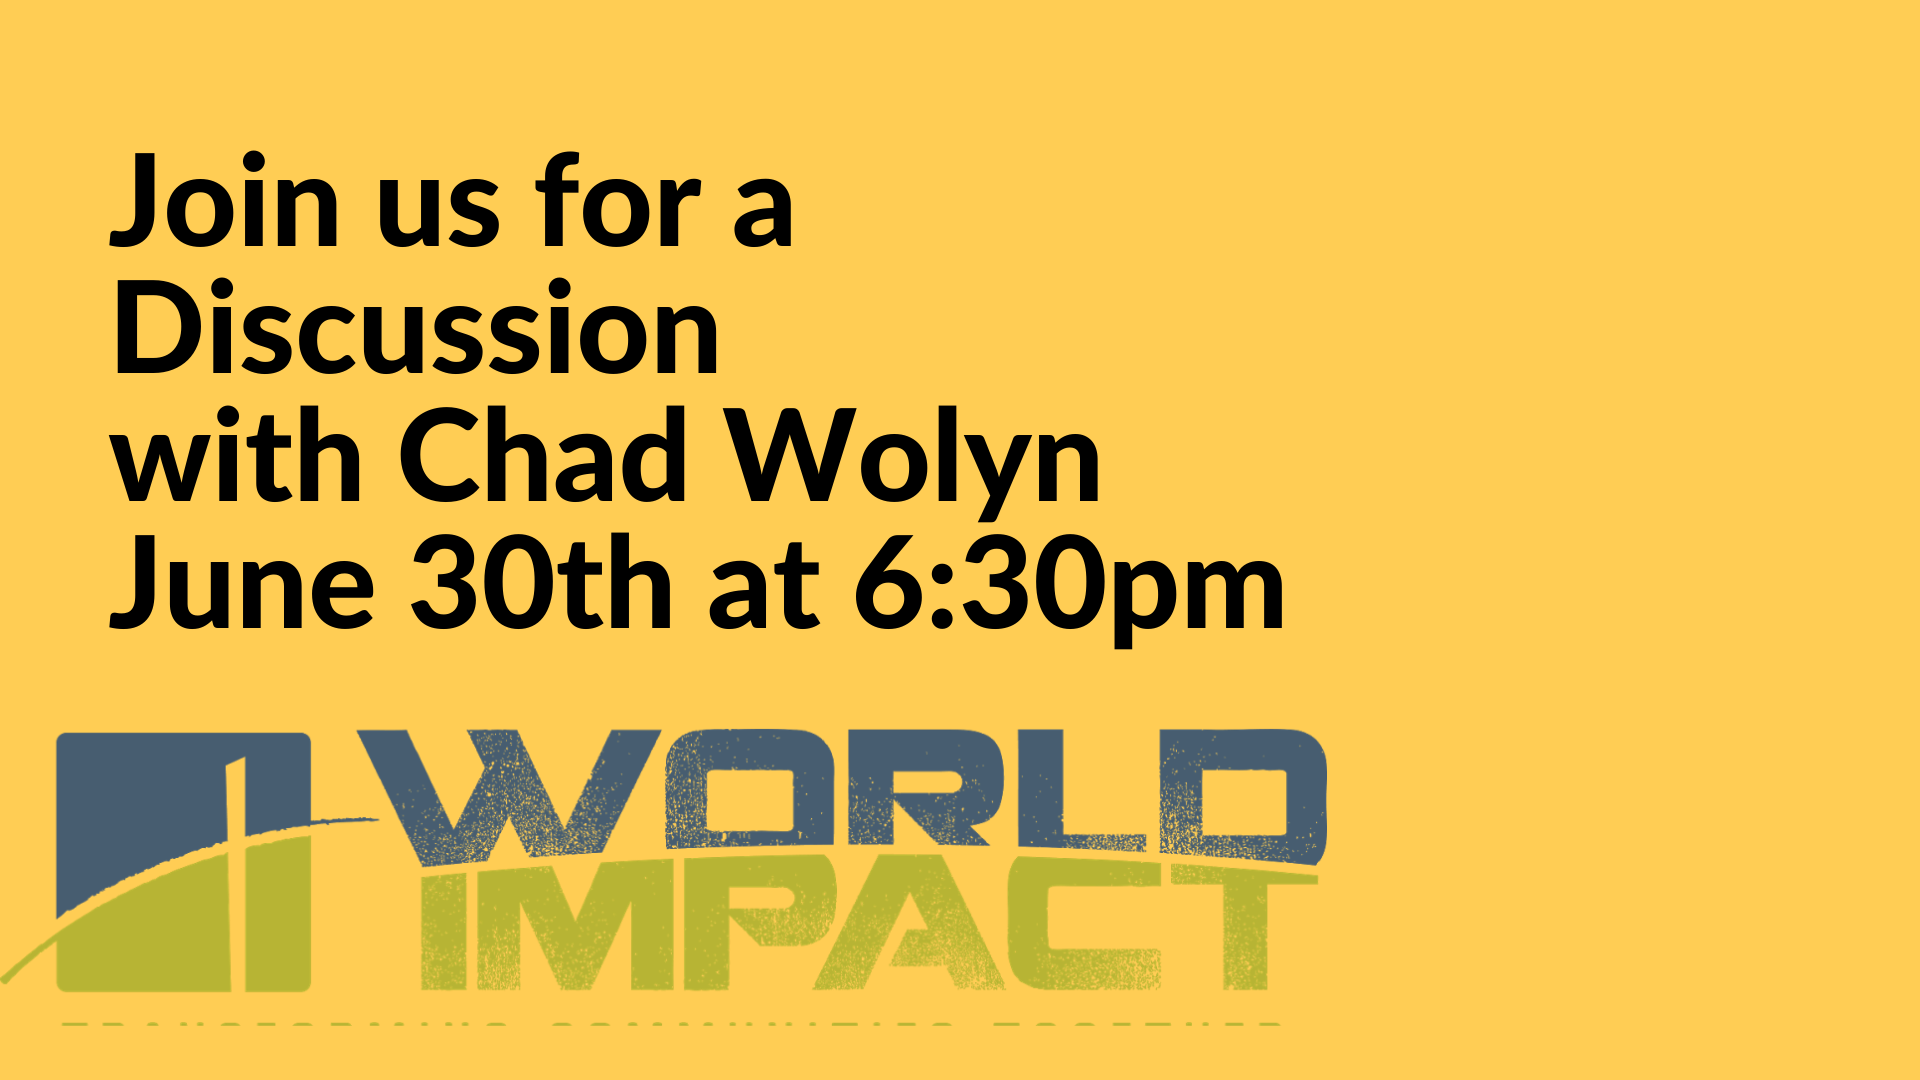 Join us for a Discussion with Chad Wolyn June 30th at 6_30pm image